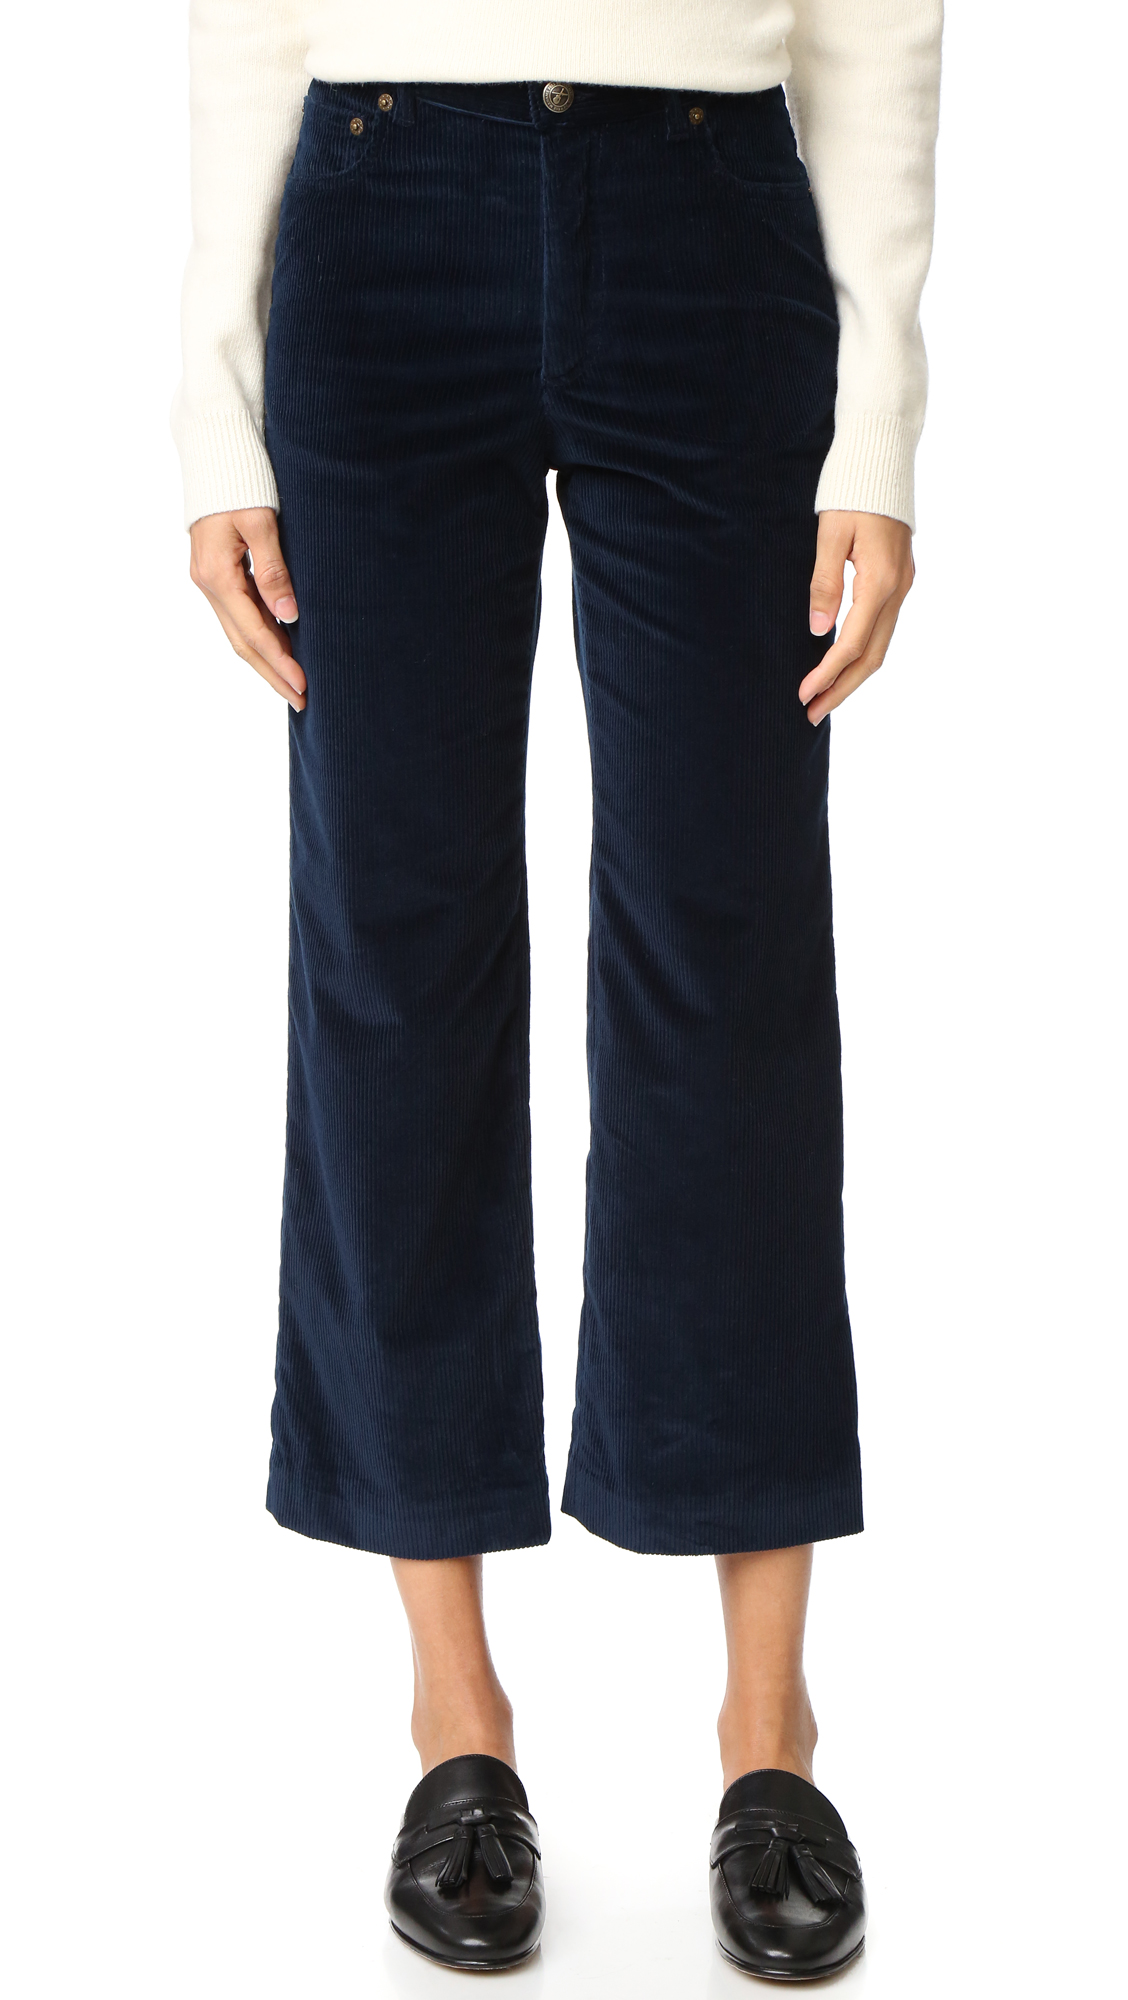 High waisted, wide leg A.P.C. pants cut from wide wale corduroy. 5 pocket styling. Button closure and zip fly. Fabric: Stretch corduroy. 98% cotton/2% elastane. Dry clean. Made in Portugal. Measurements Rise: 9.75in / 25cm Inseam: 26.75in / 68